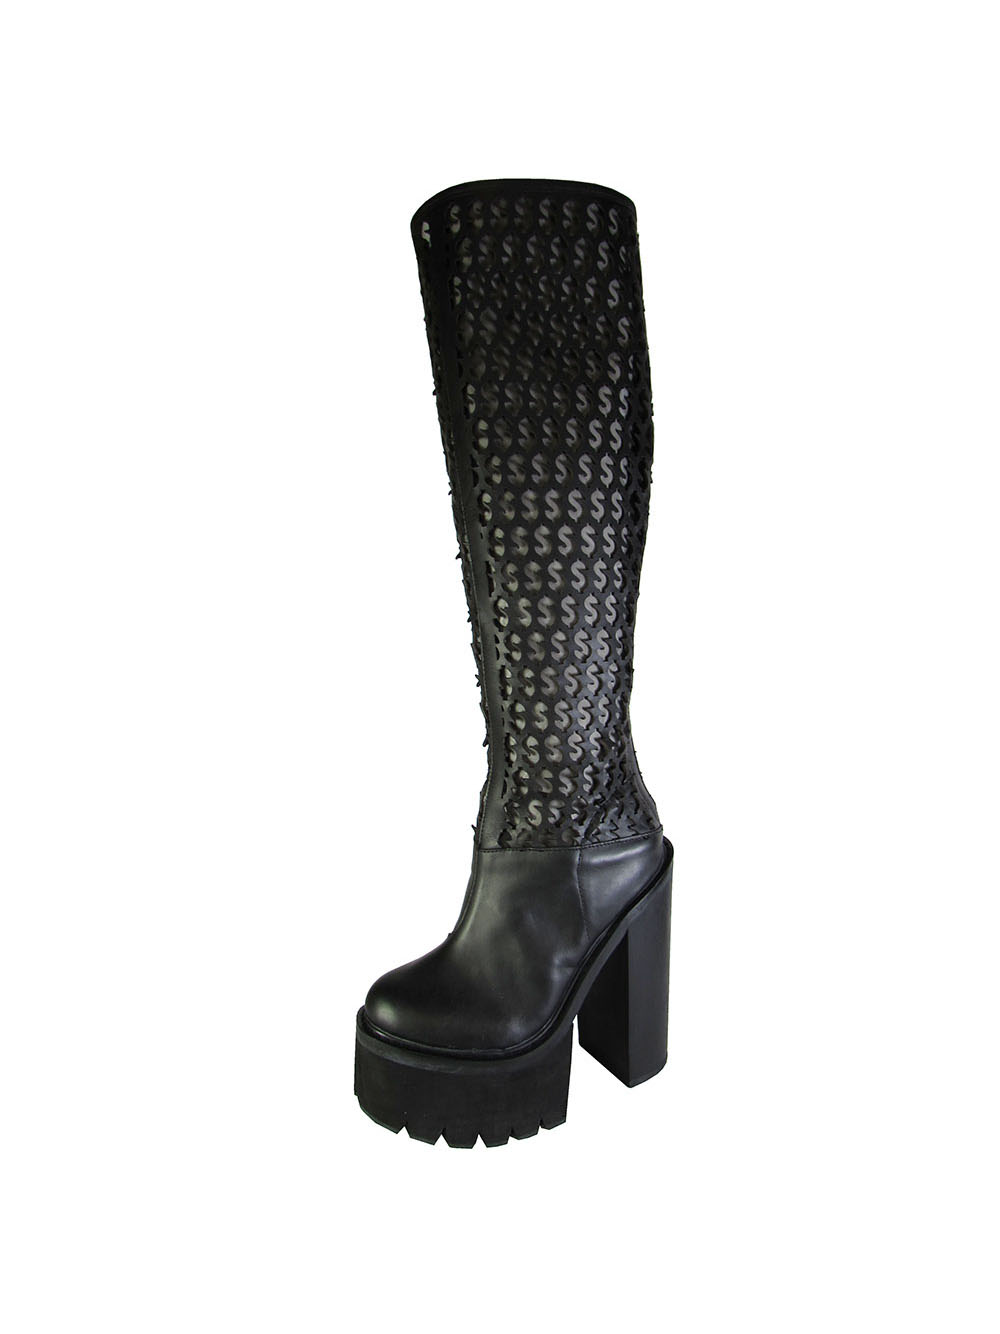 Jeffrey Campbell Womens Mulder-Hi Knee High Boot Shoe